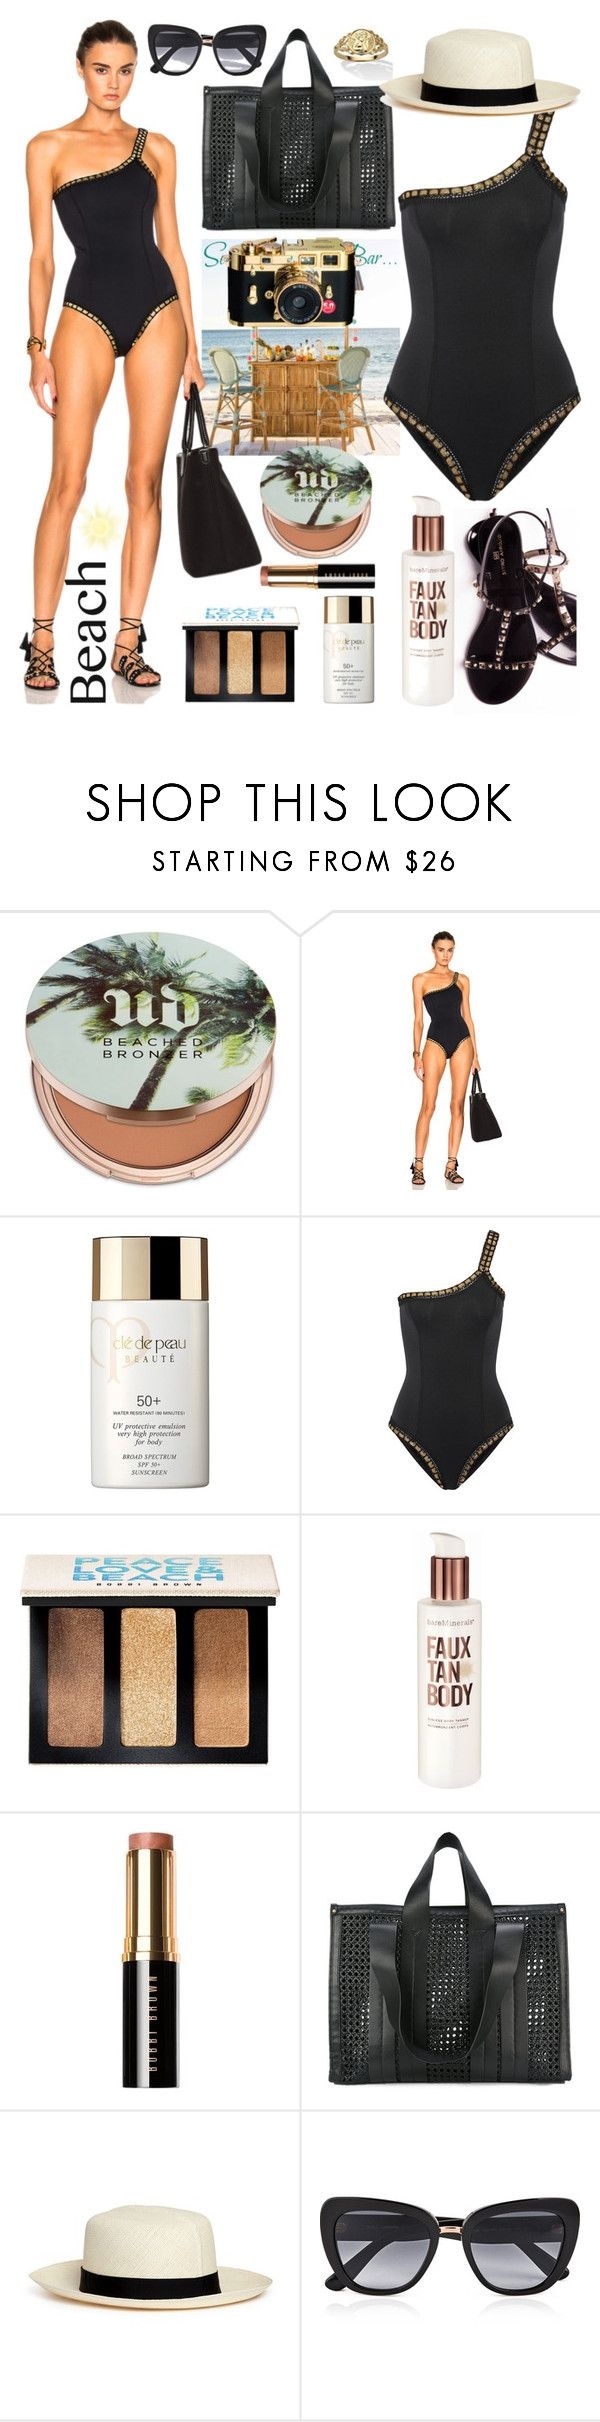 """Untitled #335"" by nuki-samson ❤ liked on Polyvore featuring Urban Decay, kiini, Clé de Peau Beauté, Bobbi Brown Cosmetics, Bare Escentuals, Corto Moltedo, Lock & Co Hatters, Leica, Dolce&Gabbana and Palm Beach Jewelry"